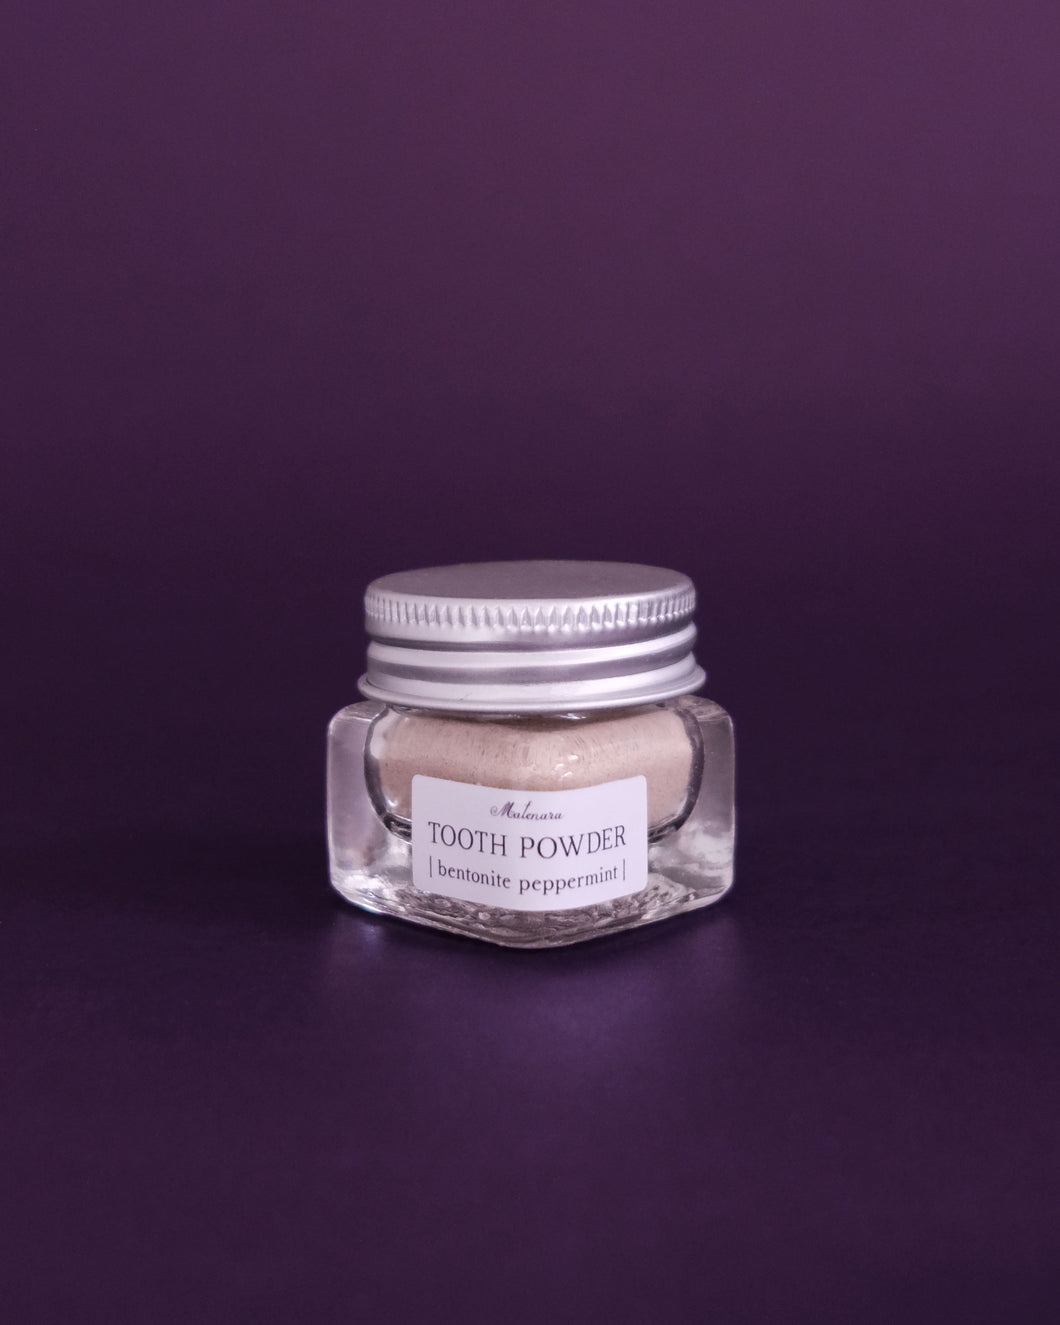 Tooth Powder - Bentonite Peppermint